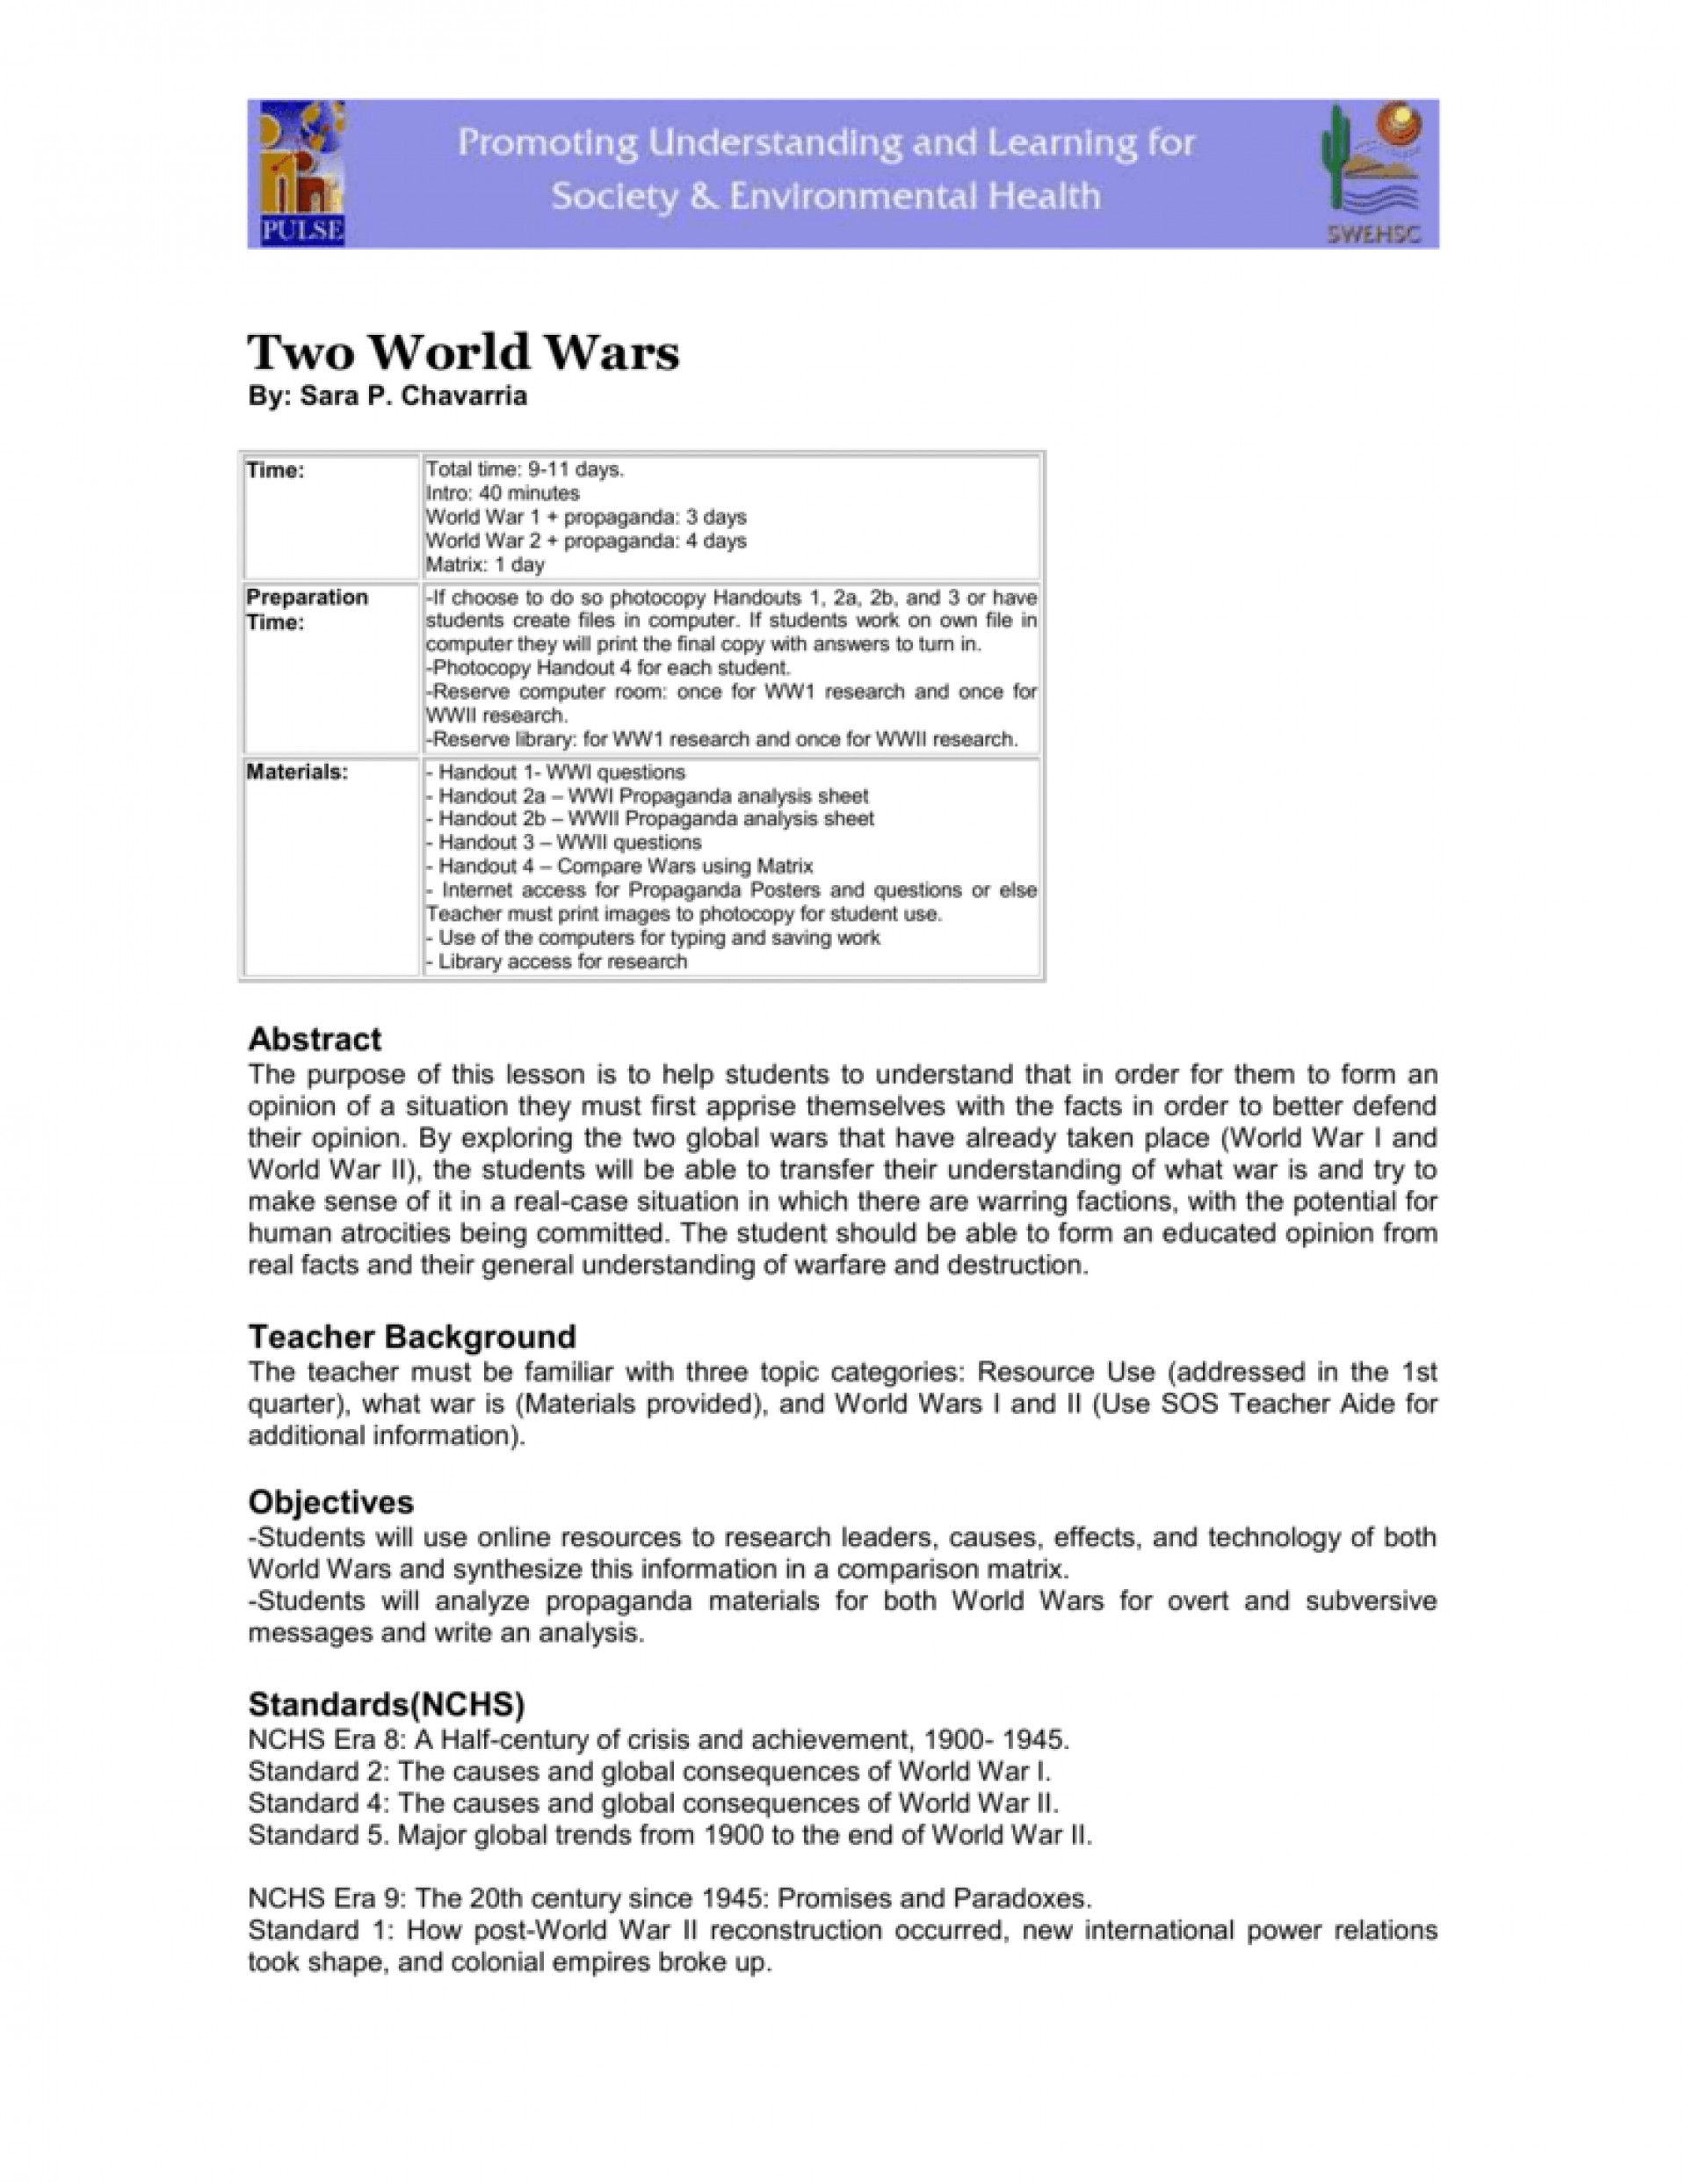 016 World War Essay Example 008021796 1 Outstanding 2 Causes Of Questions Hooks 1920